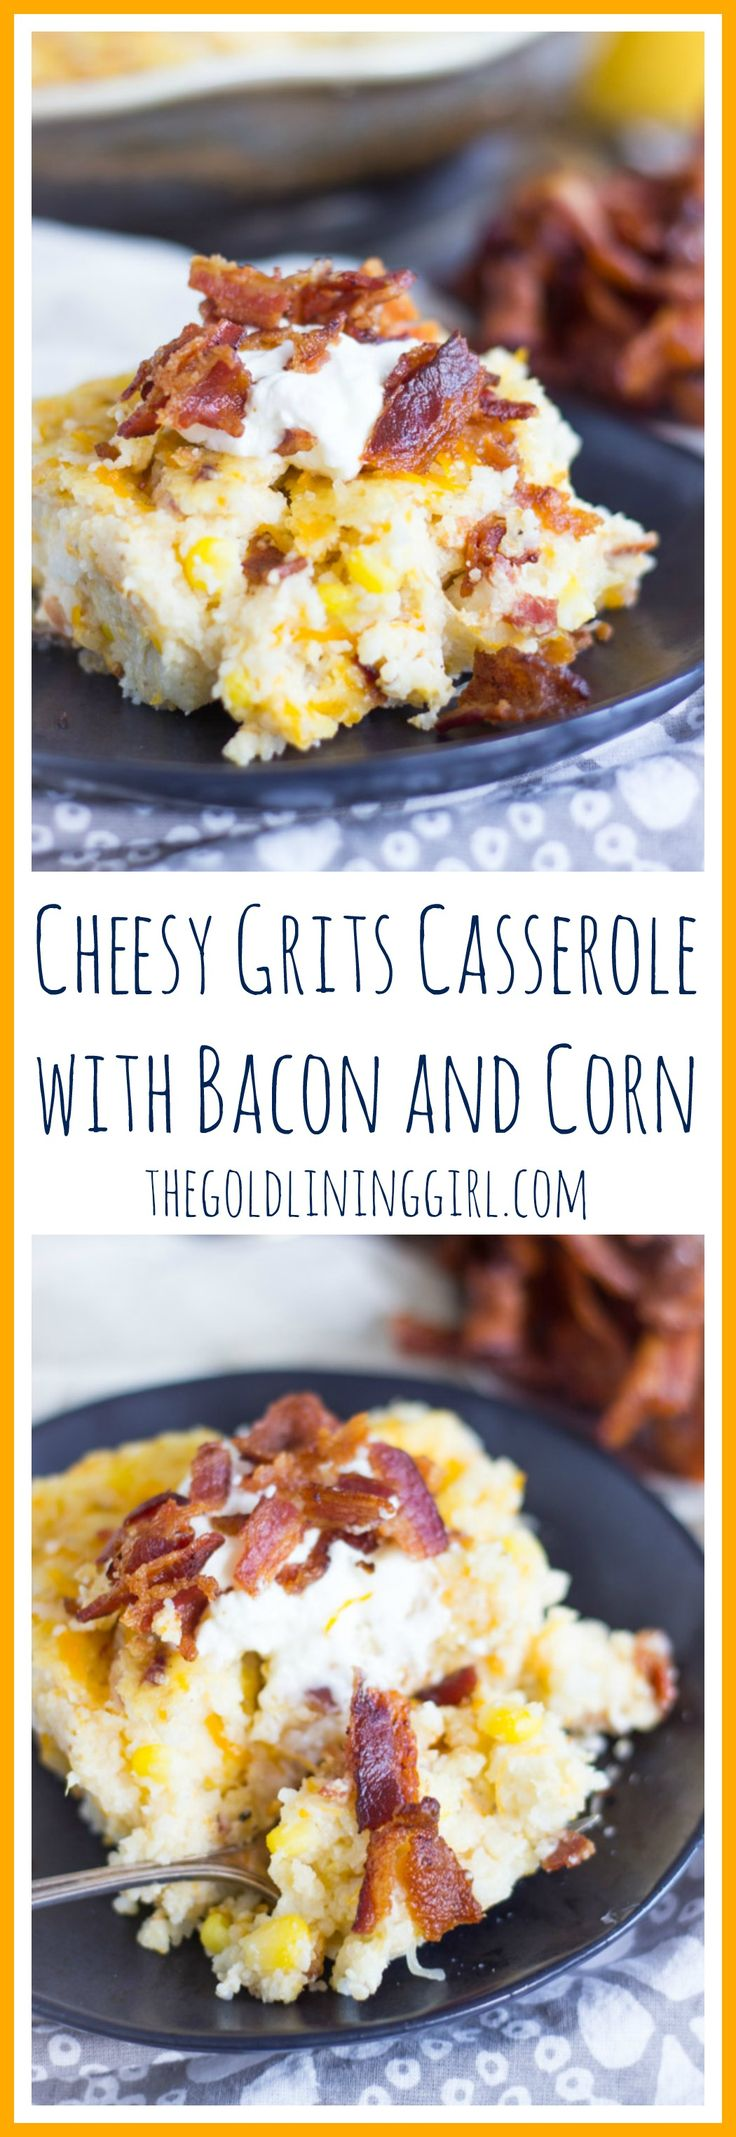 Cheesy Grits Casserole with Bacon and Corn pin